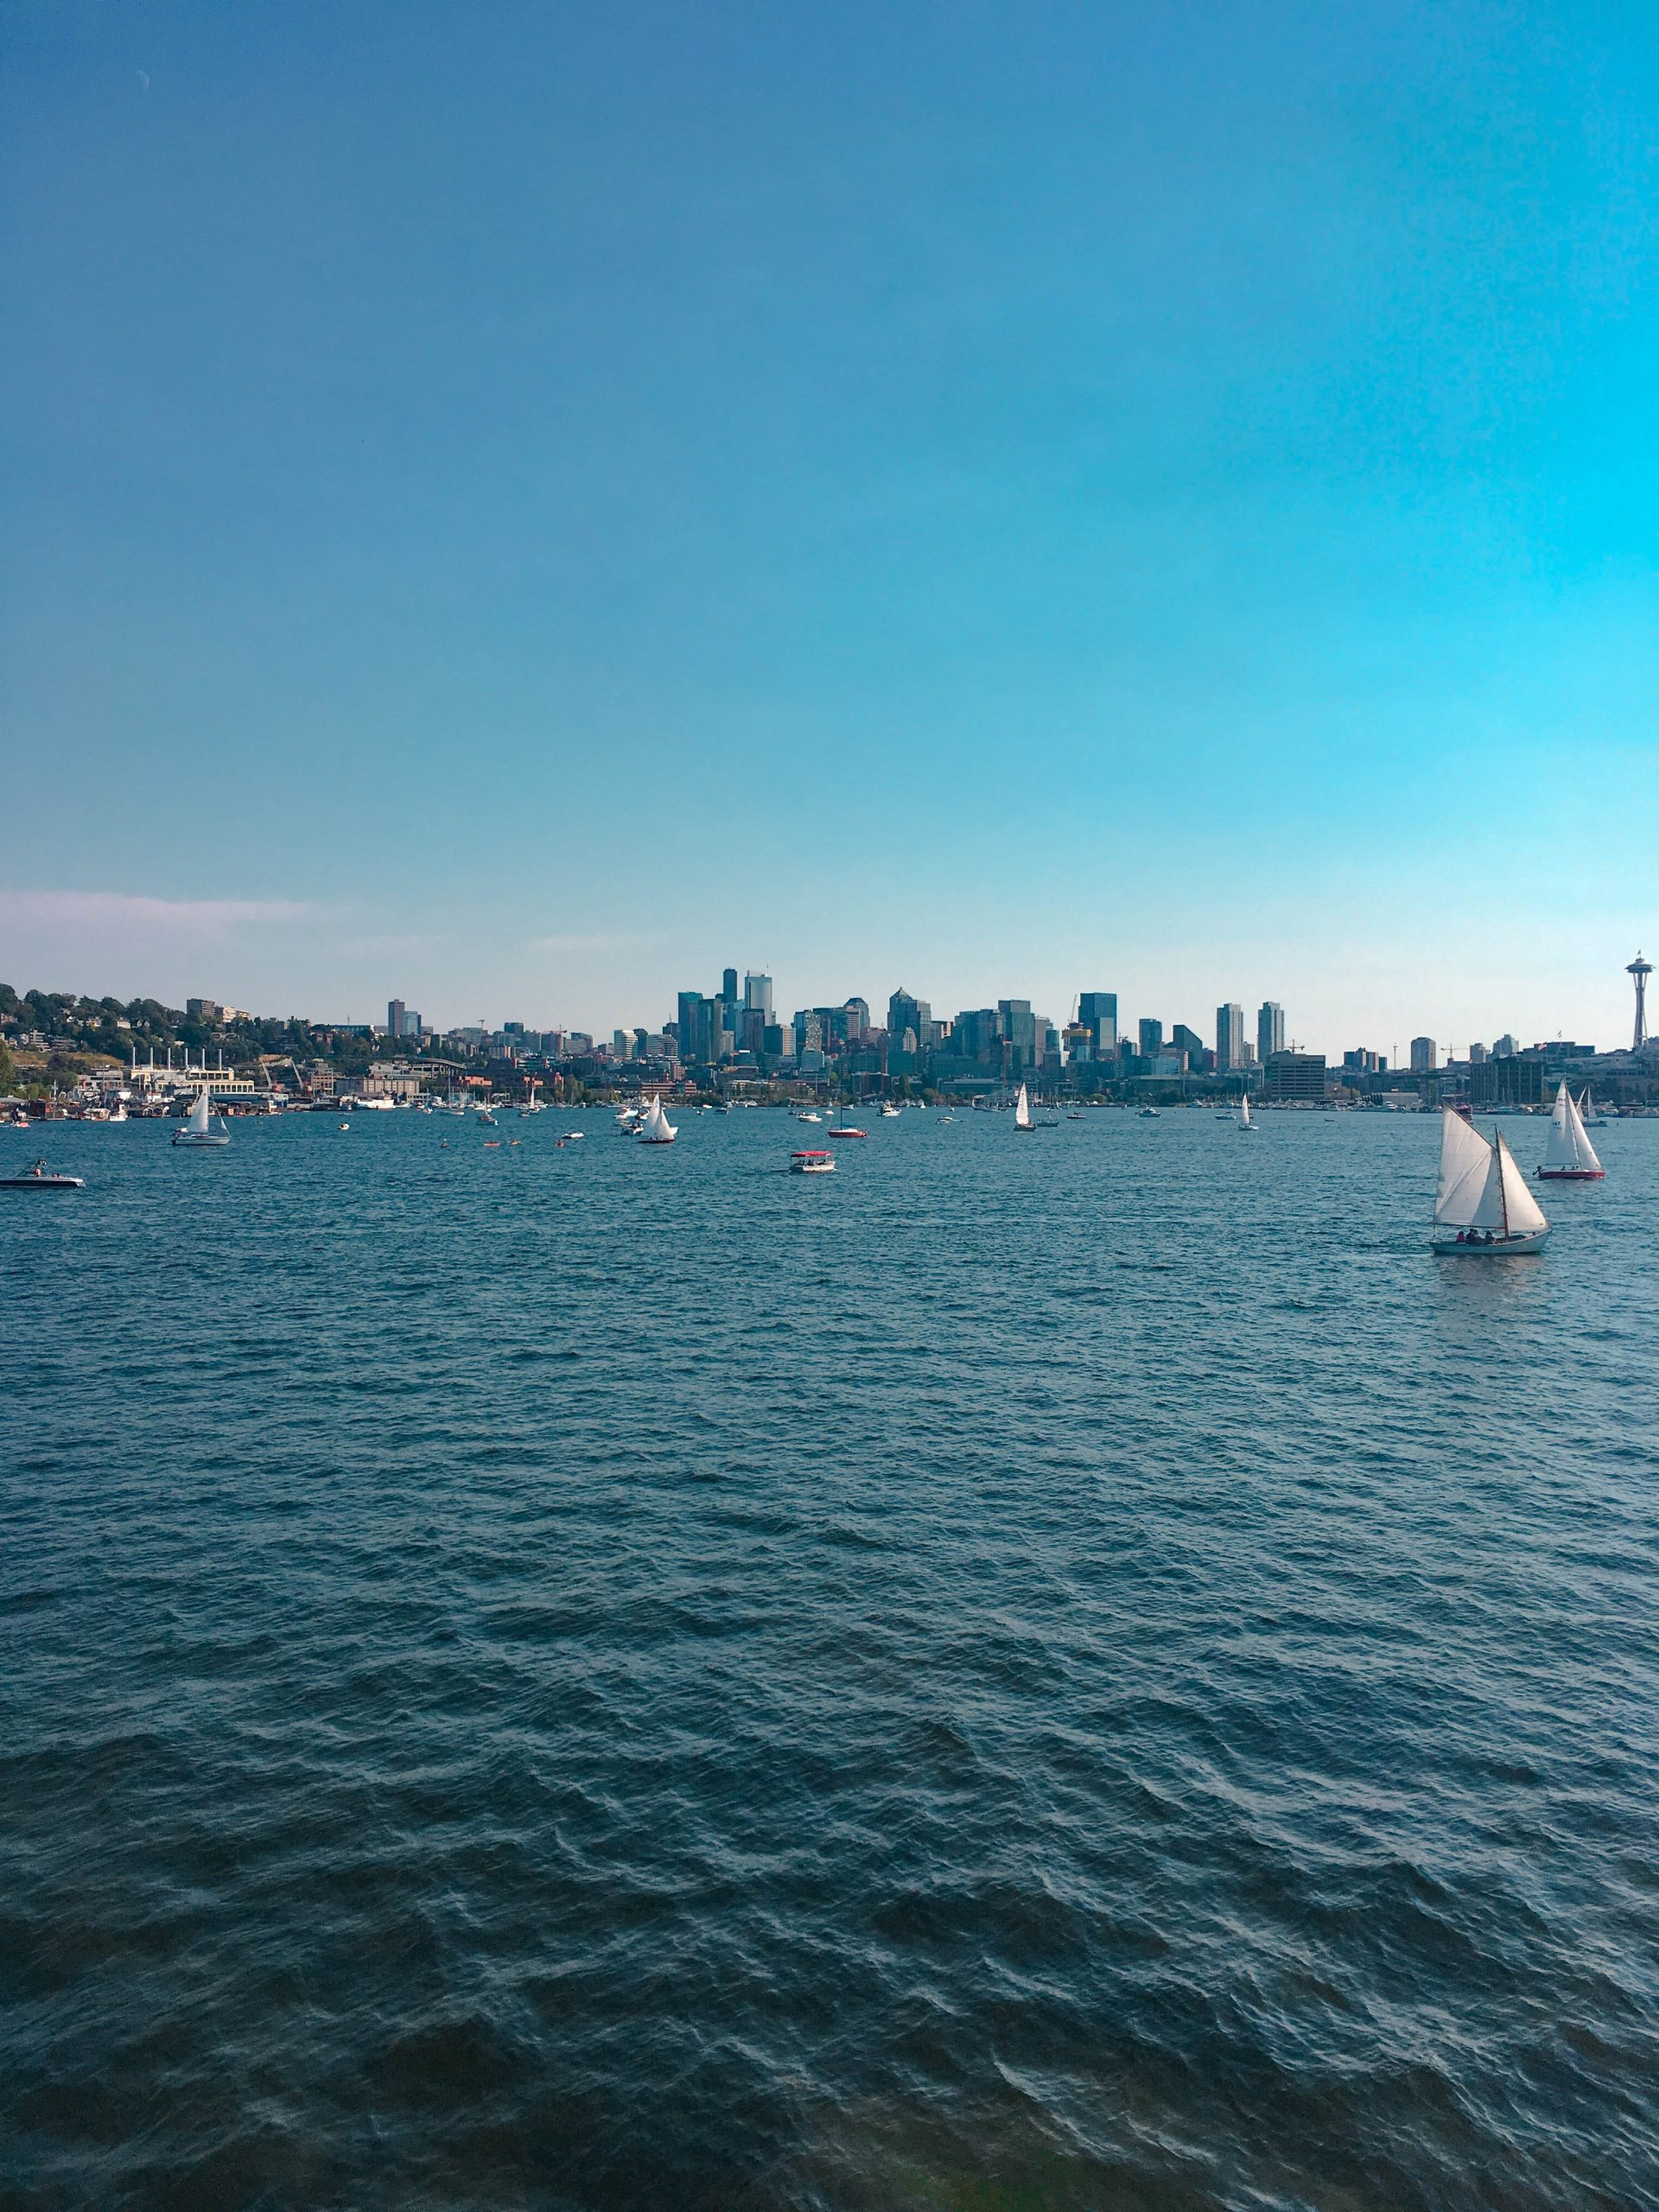 a view of seattle from puget sound